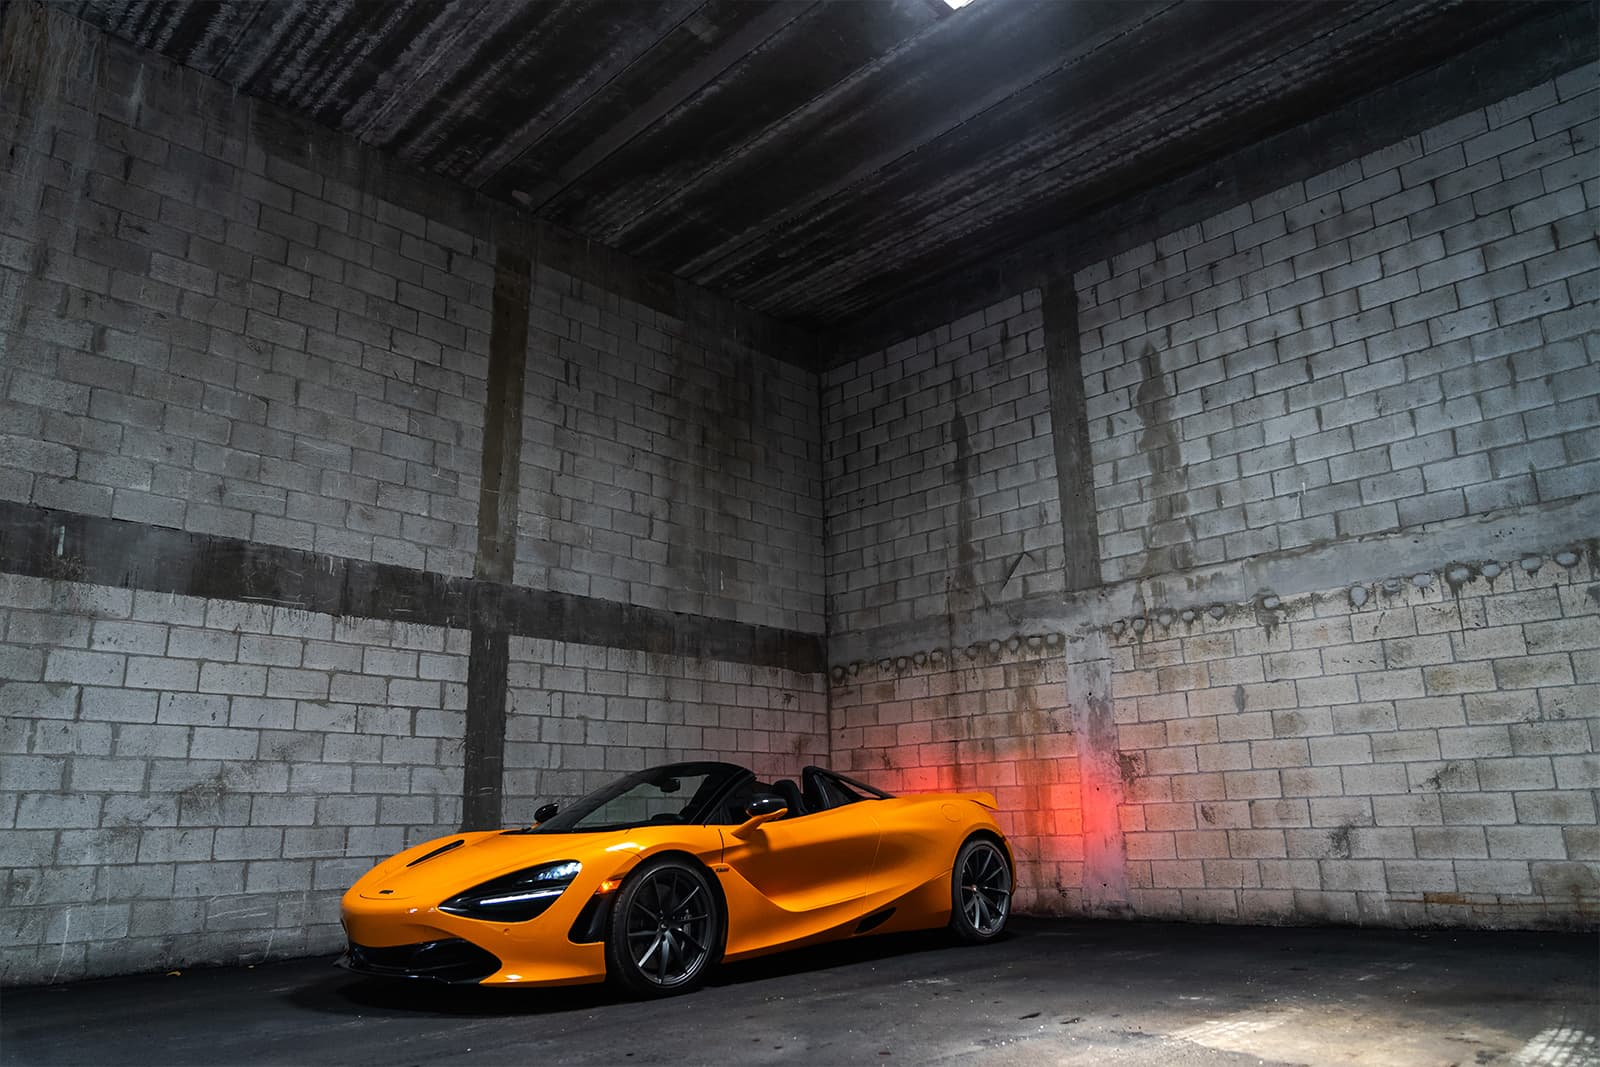 2020 Mclaren 720s Spider  2-Door Miami, FL